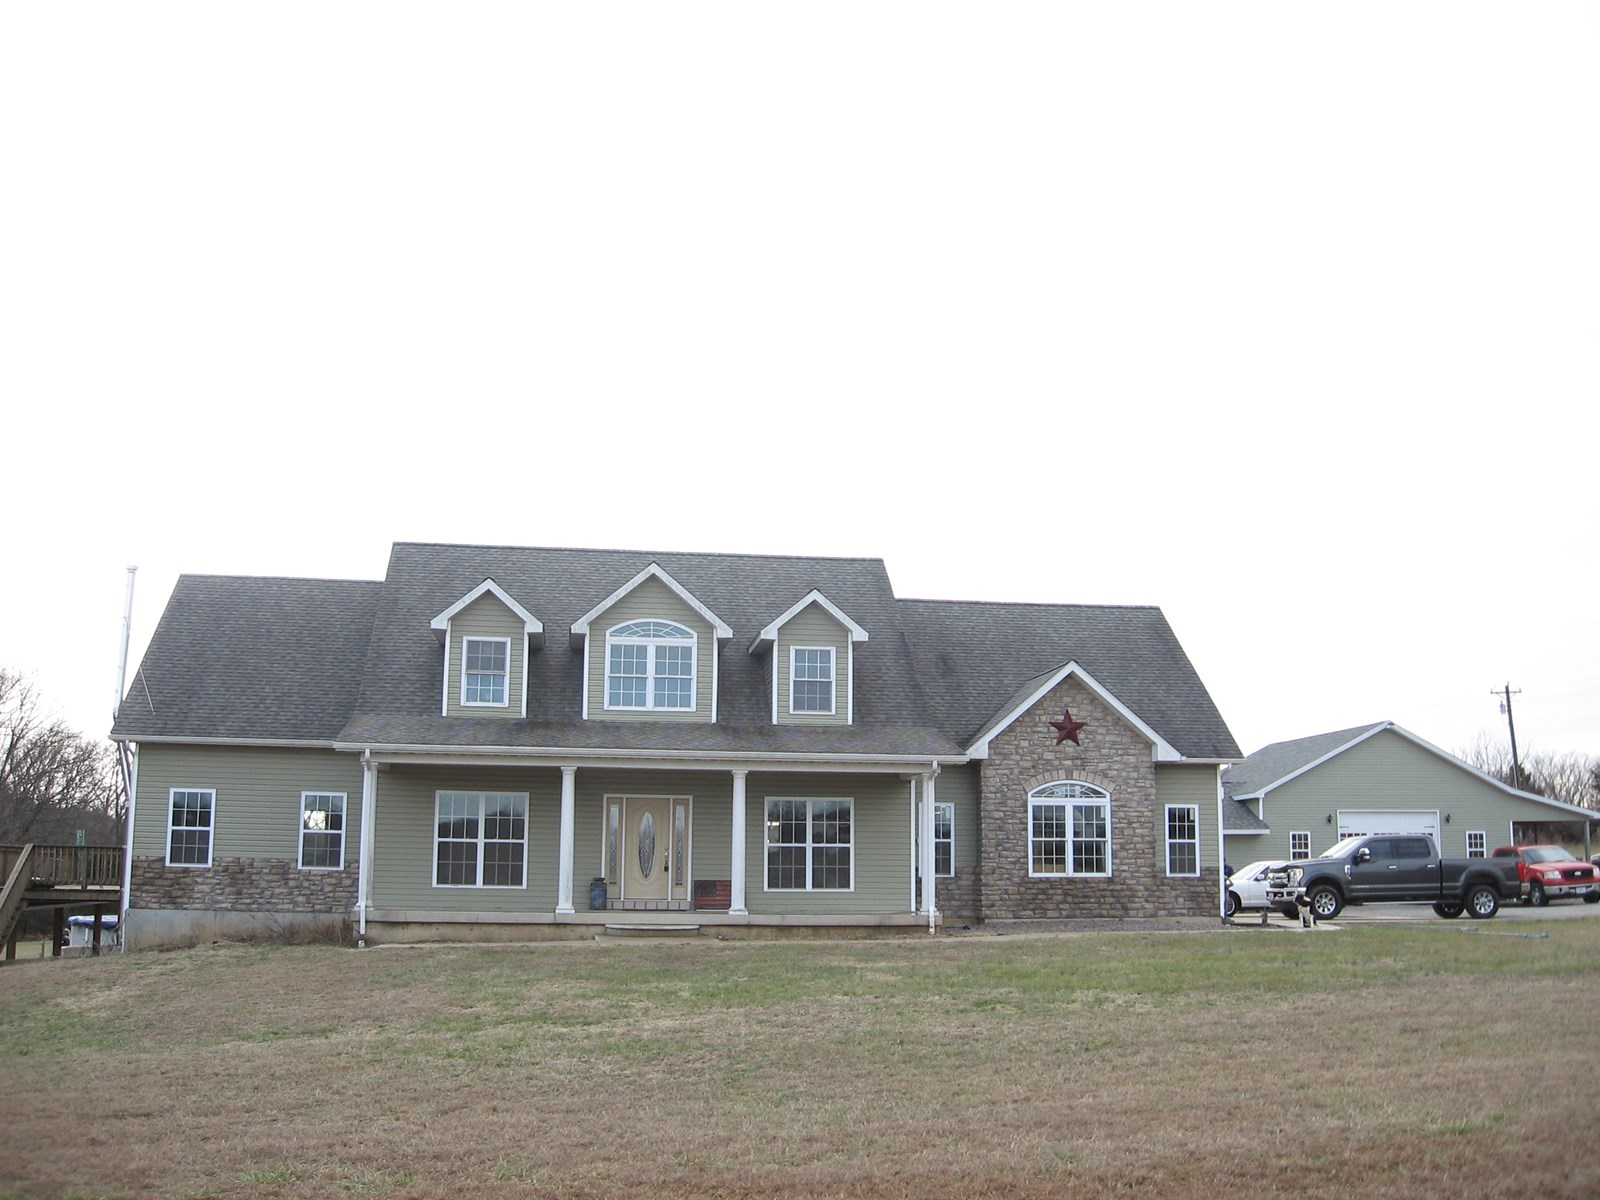 CUSTOM BUILT 4-BR, 3-BA COUNTRY HOME ON 7 ACRES: